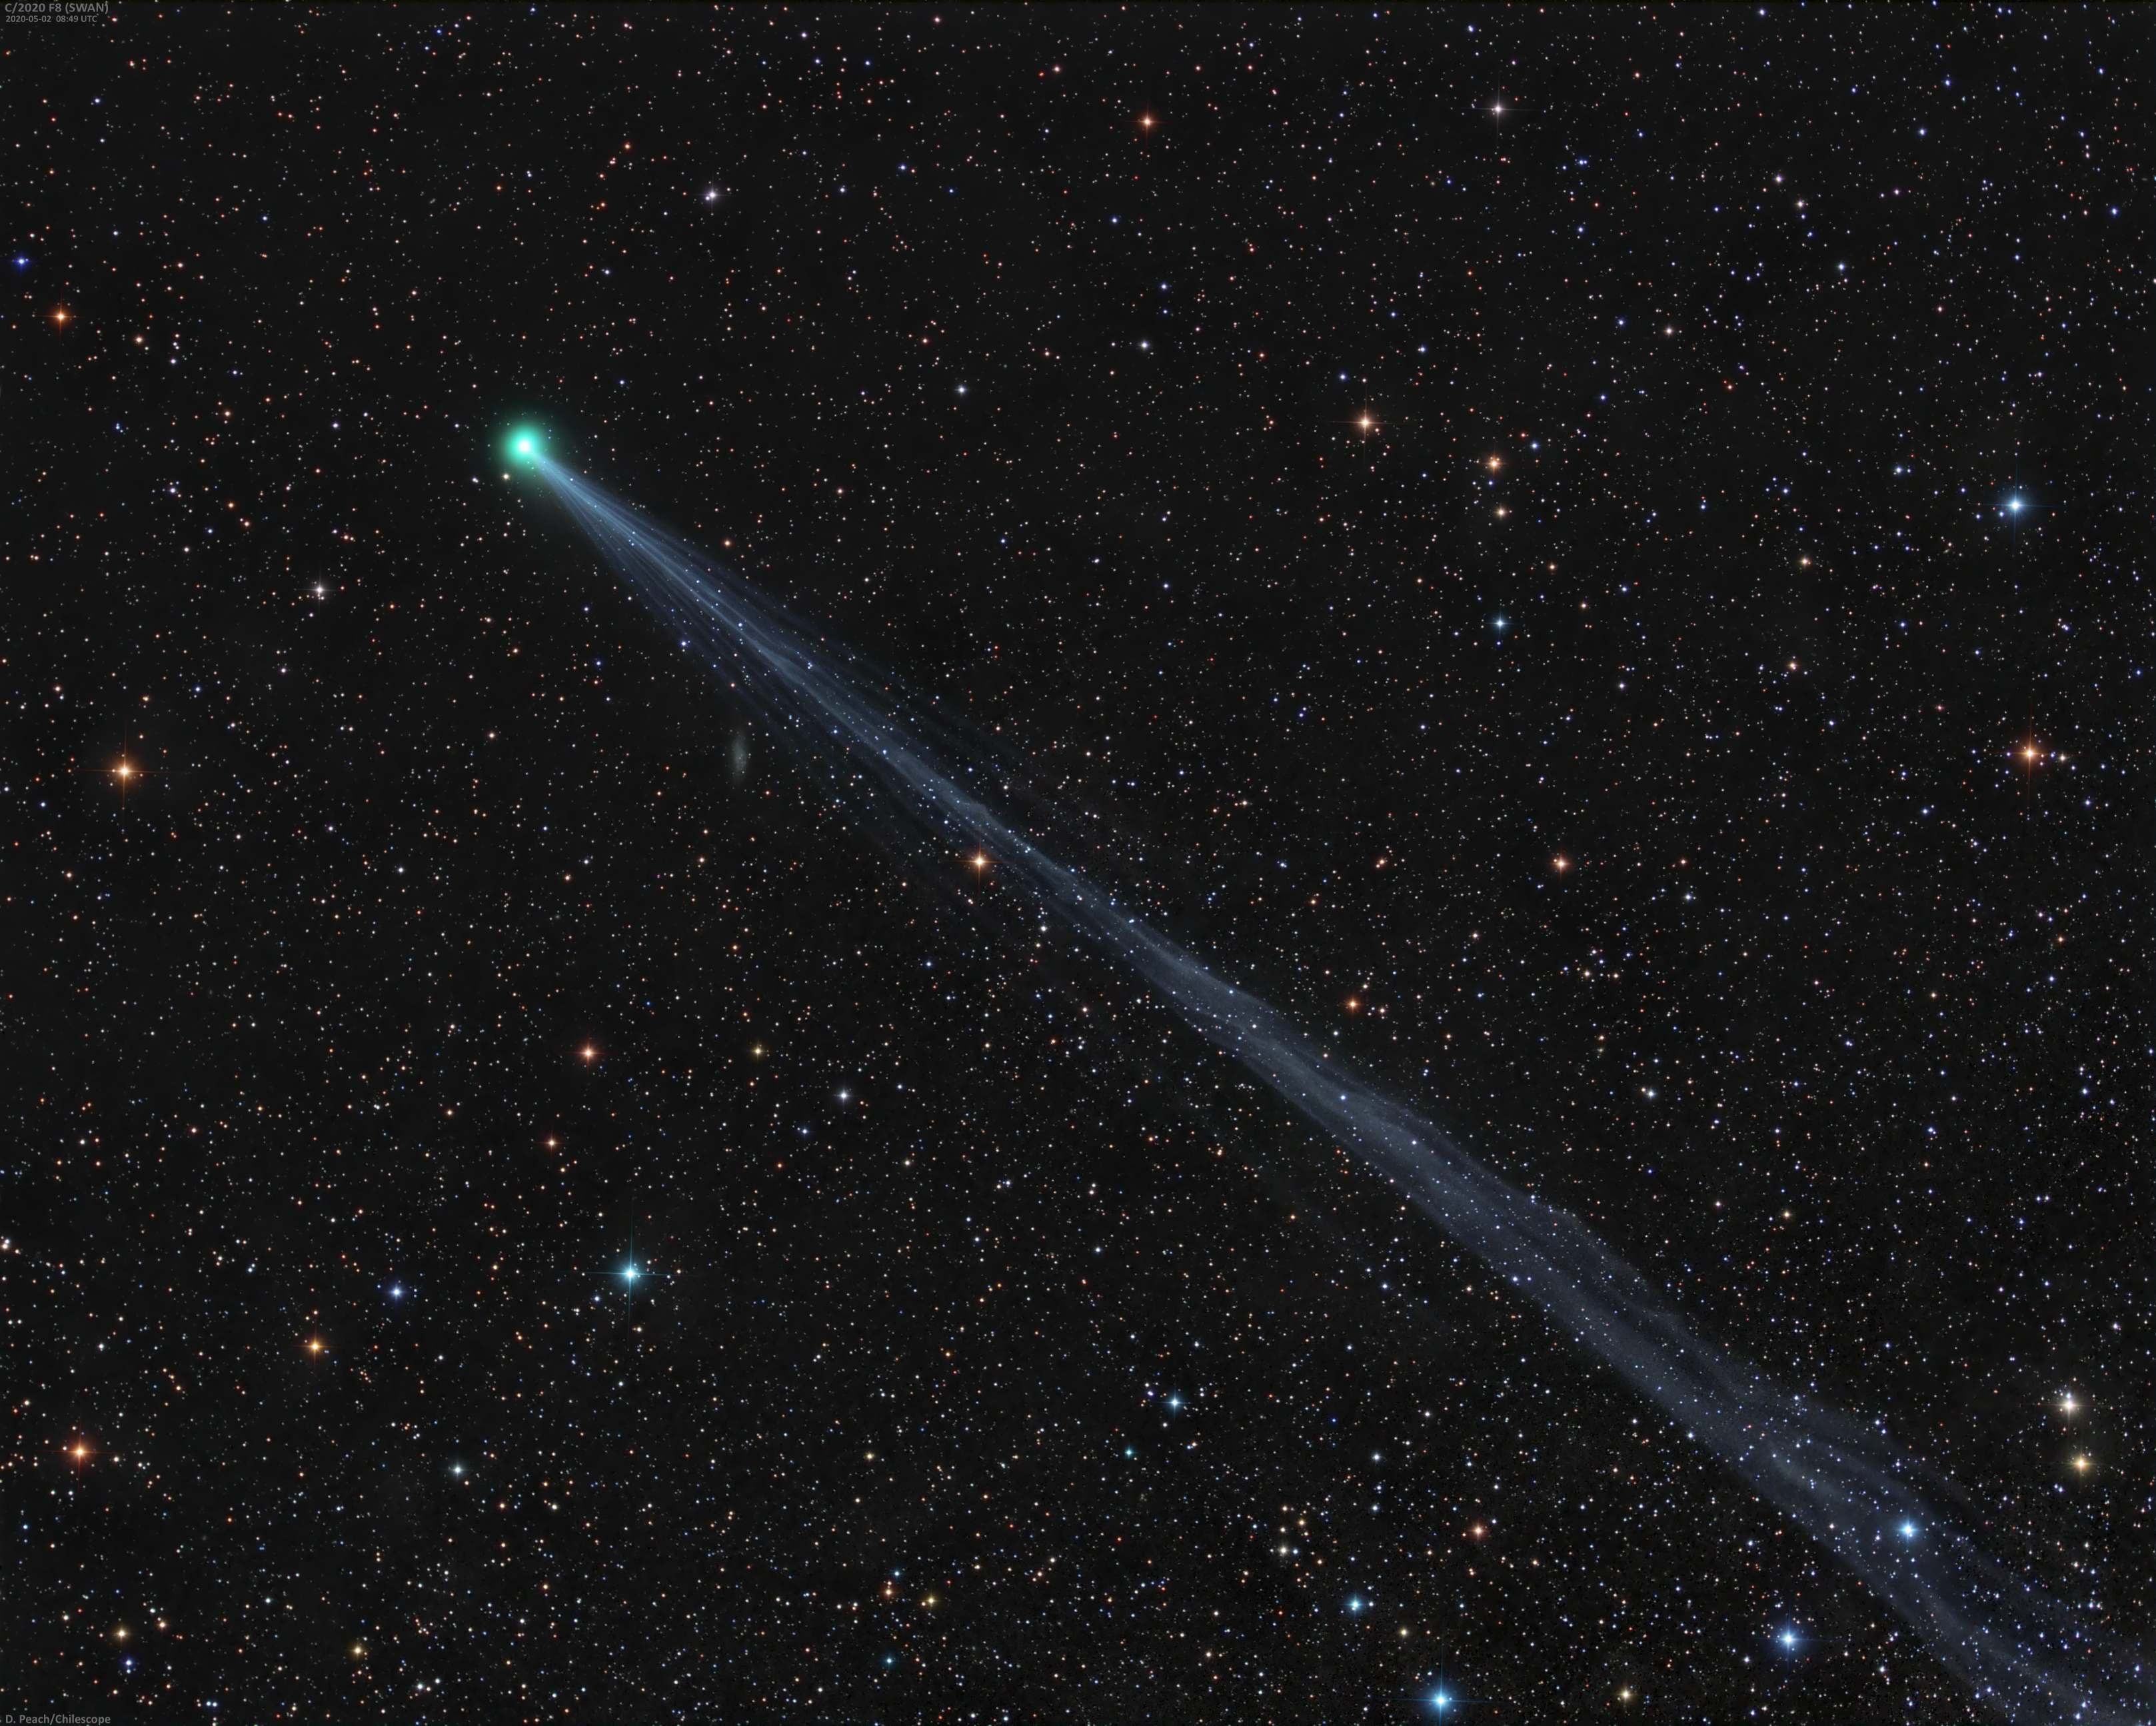 Long Tailed Comet SWAN